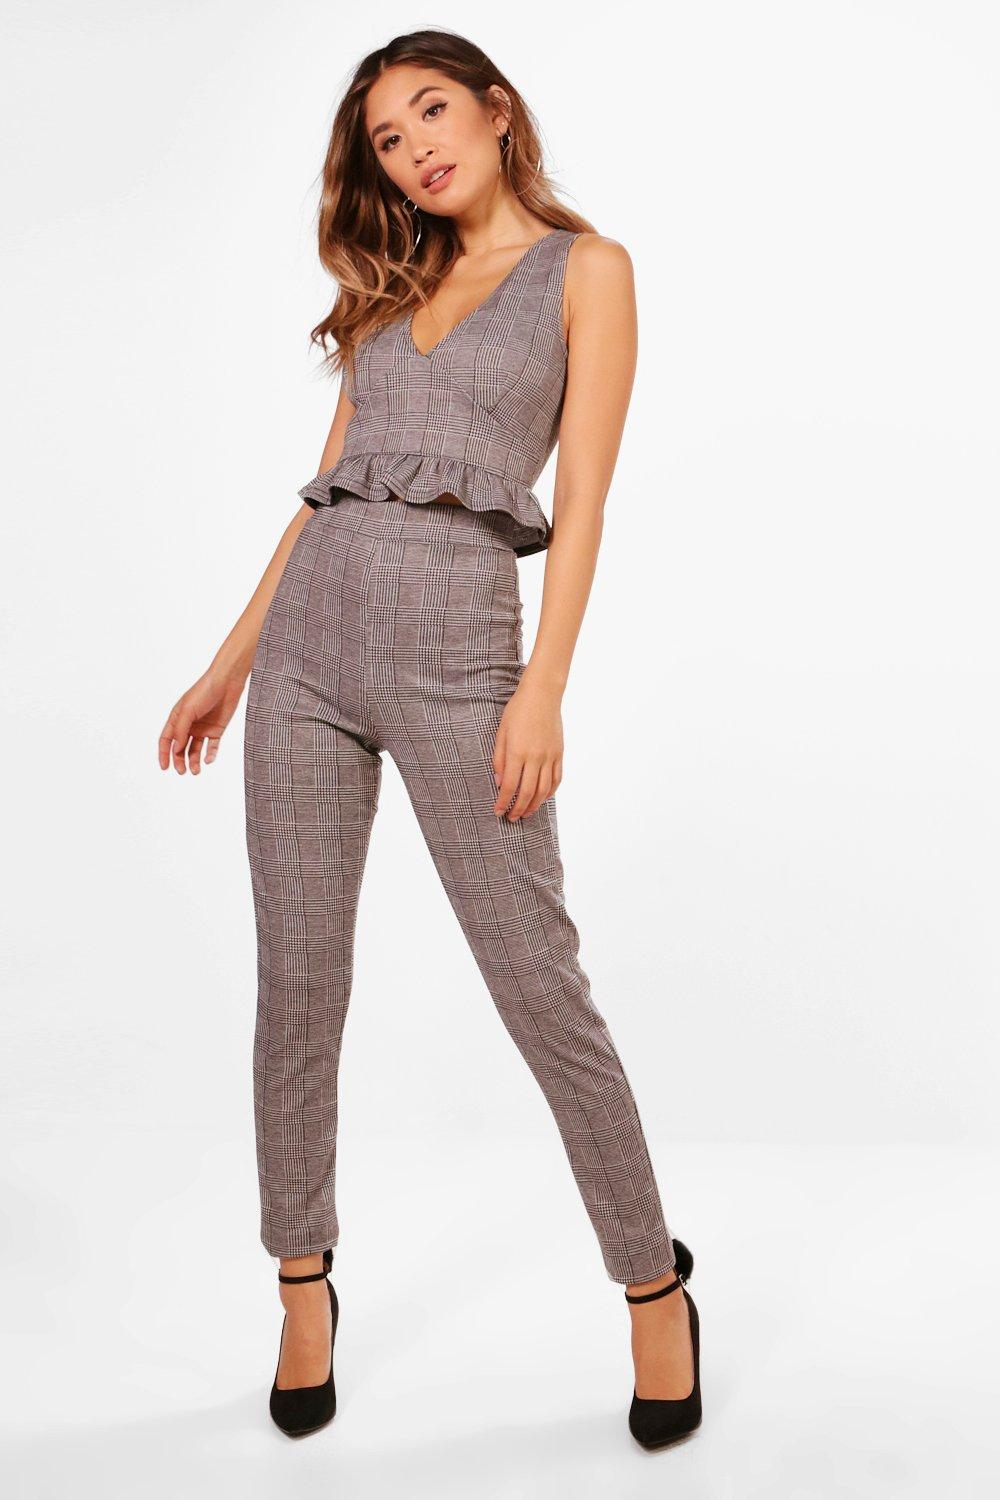 Skinny and grey Trouser Crop Plunge Set Check qwv4tt